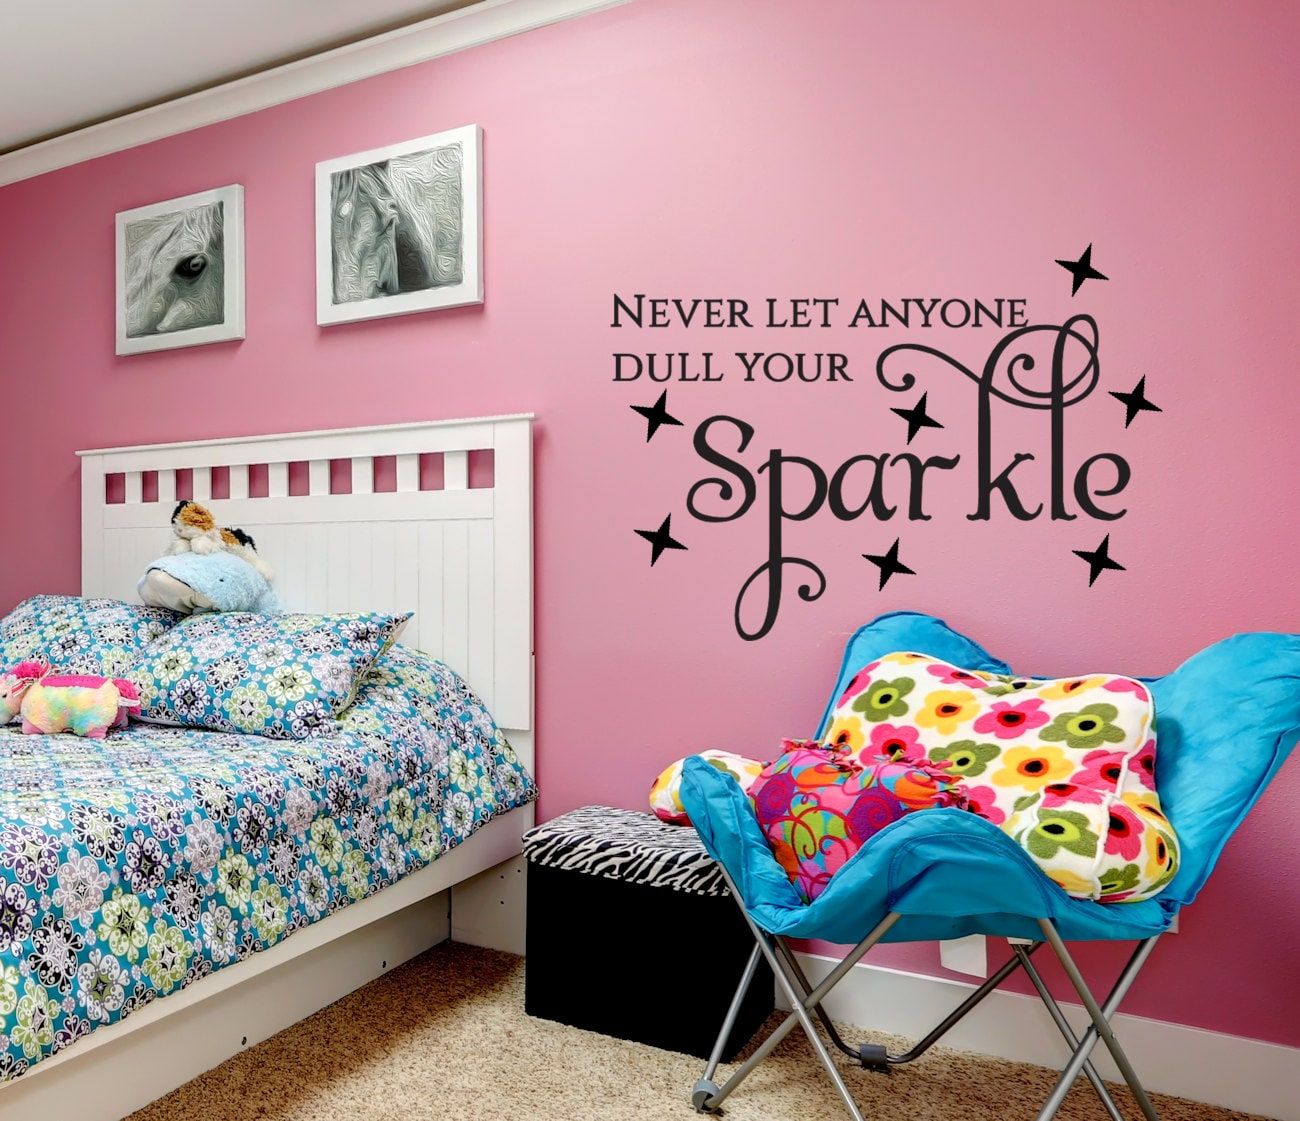 Unique home decor inspirational quotes wall decal home for Home decorations quotes